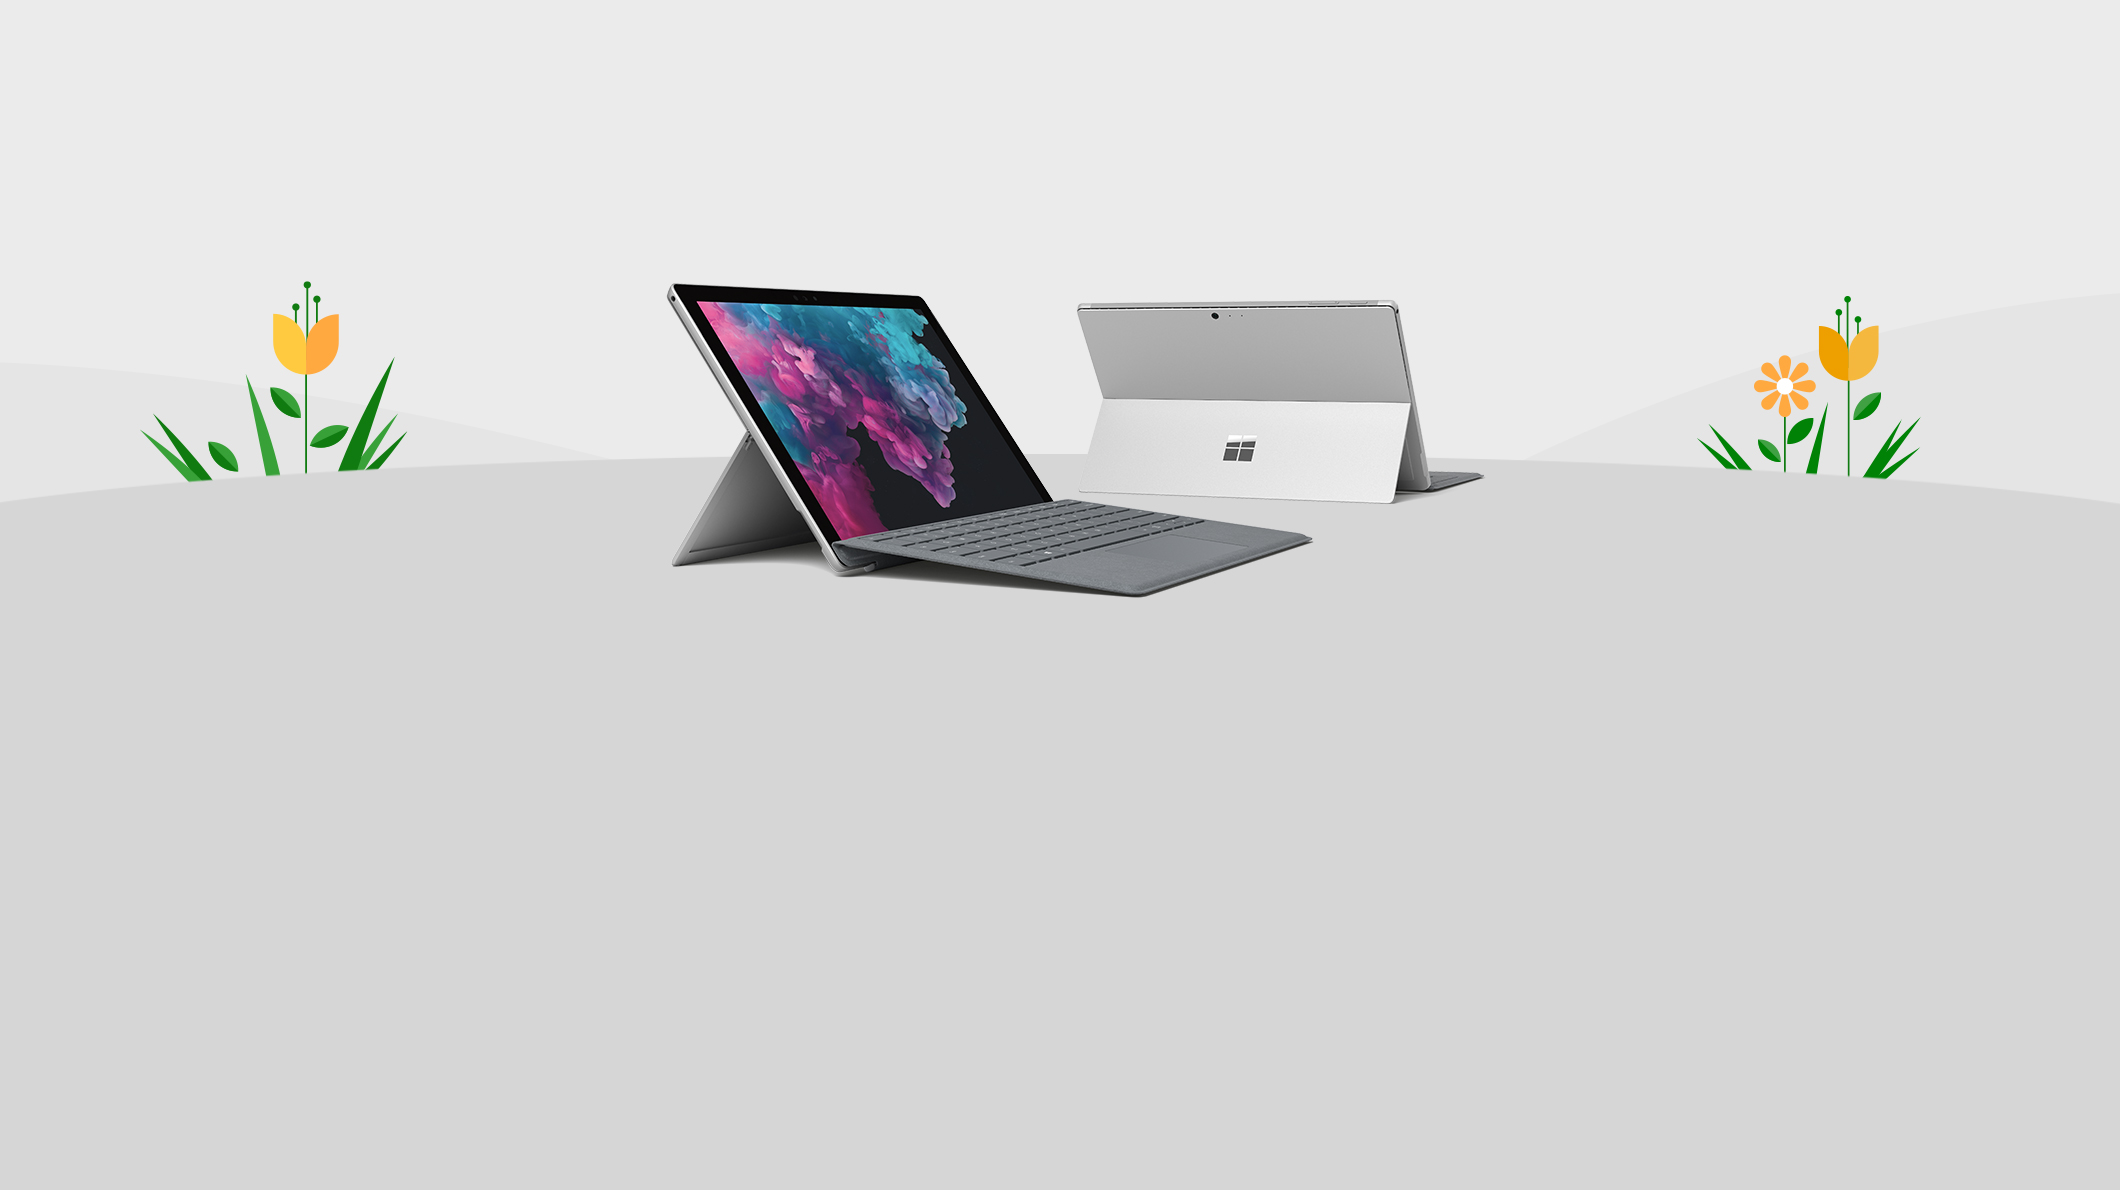 Surface Pro 6 z piórem Surface, kontroler Xbox, konsola Xbox One S i Surface Laptop 2